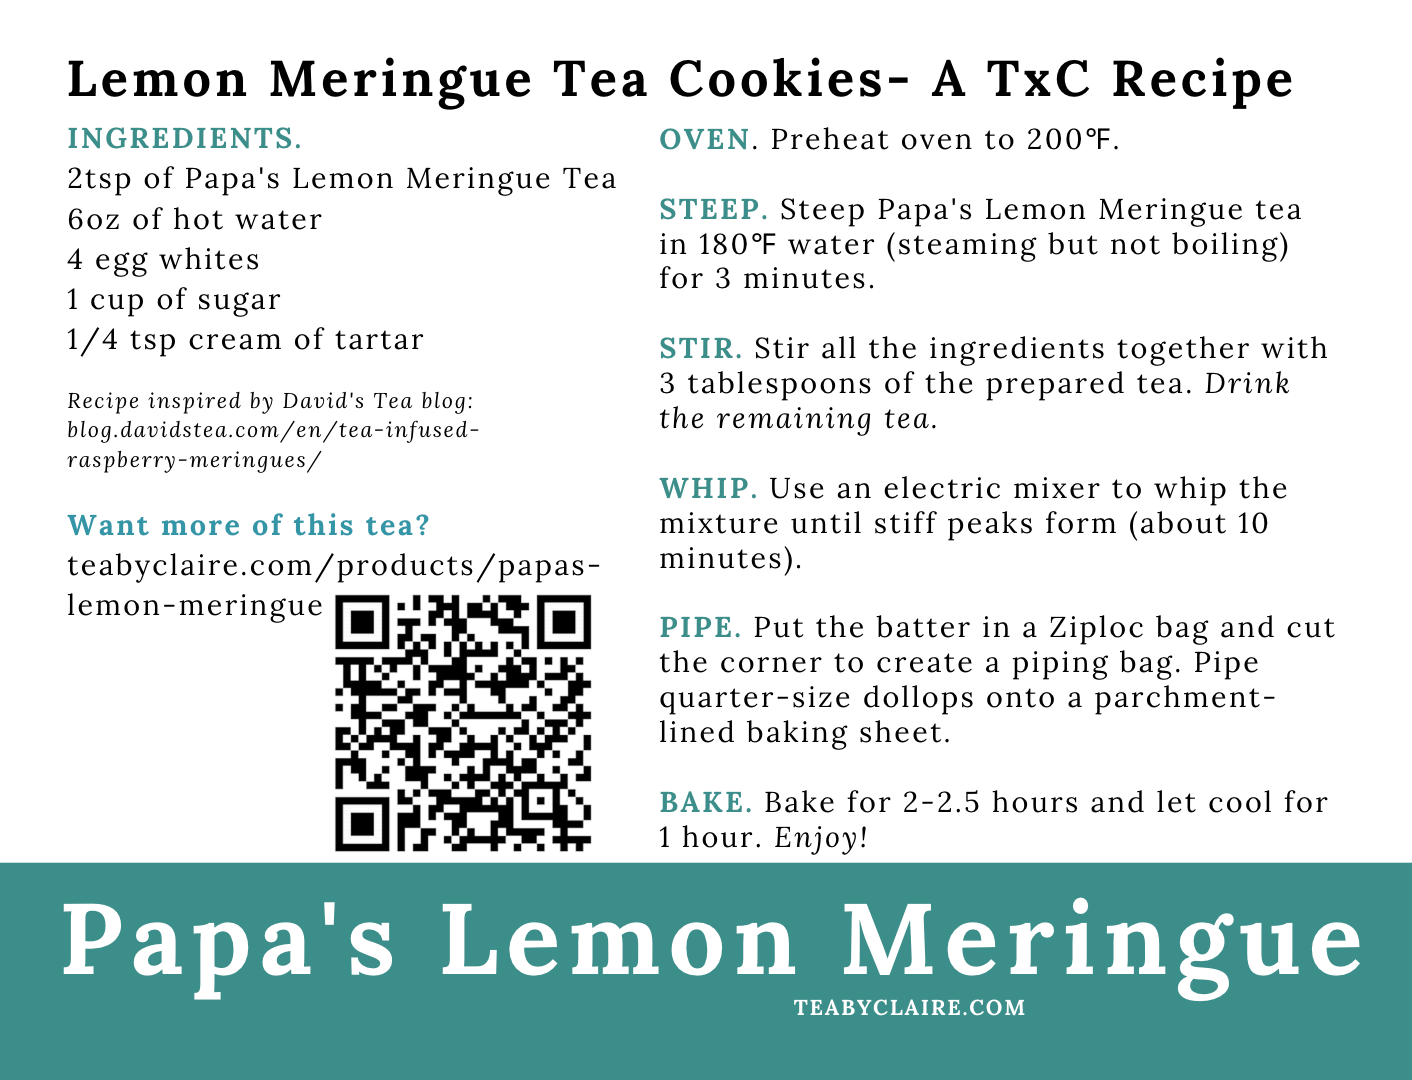 Papa's Lemon Meringue